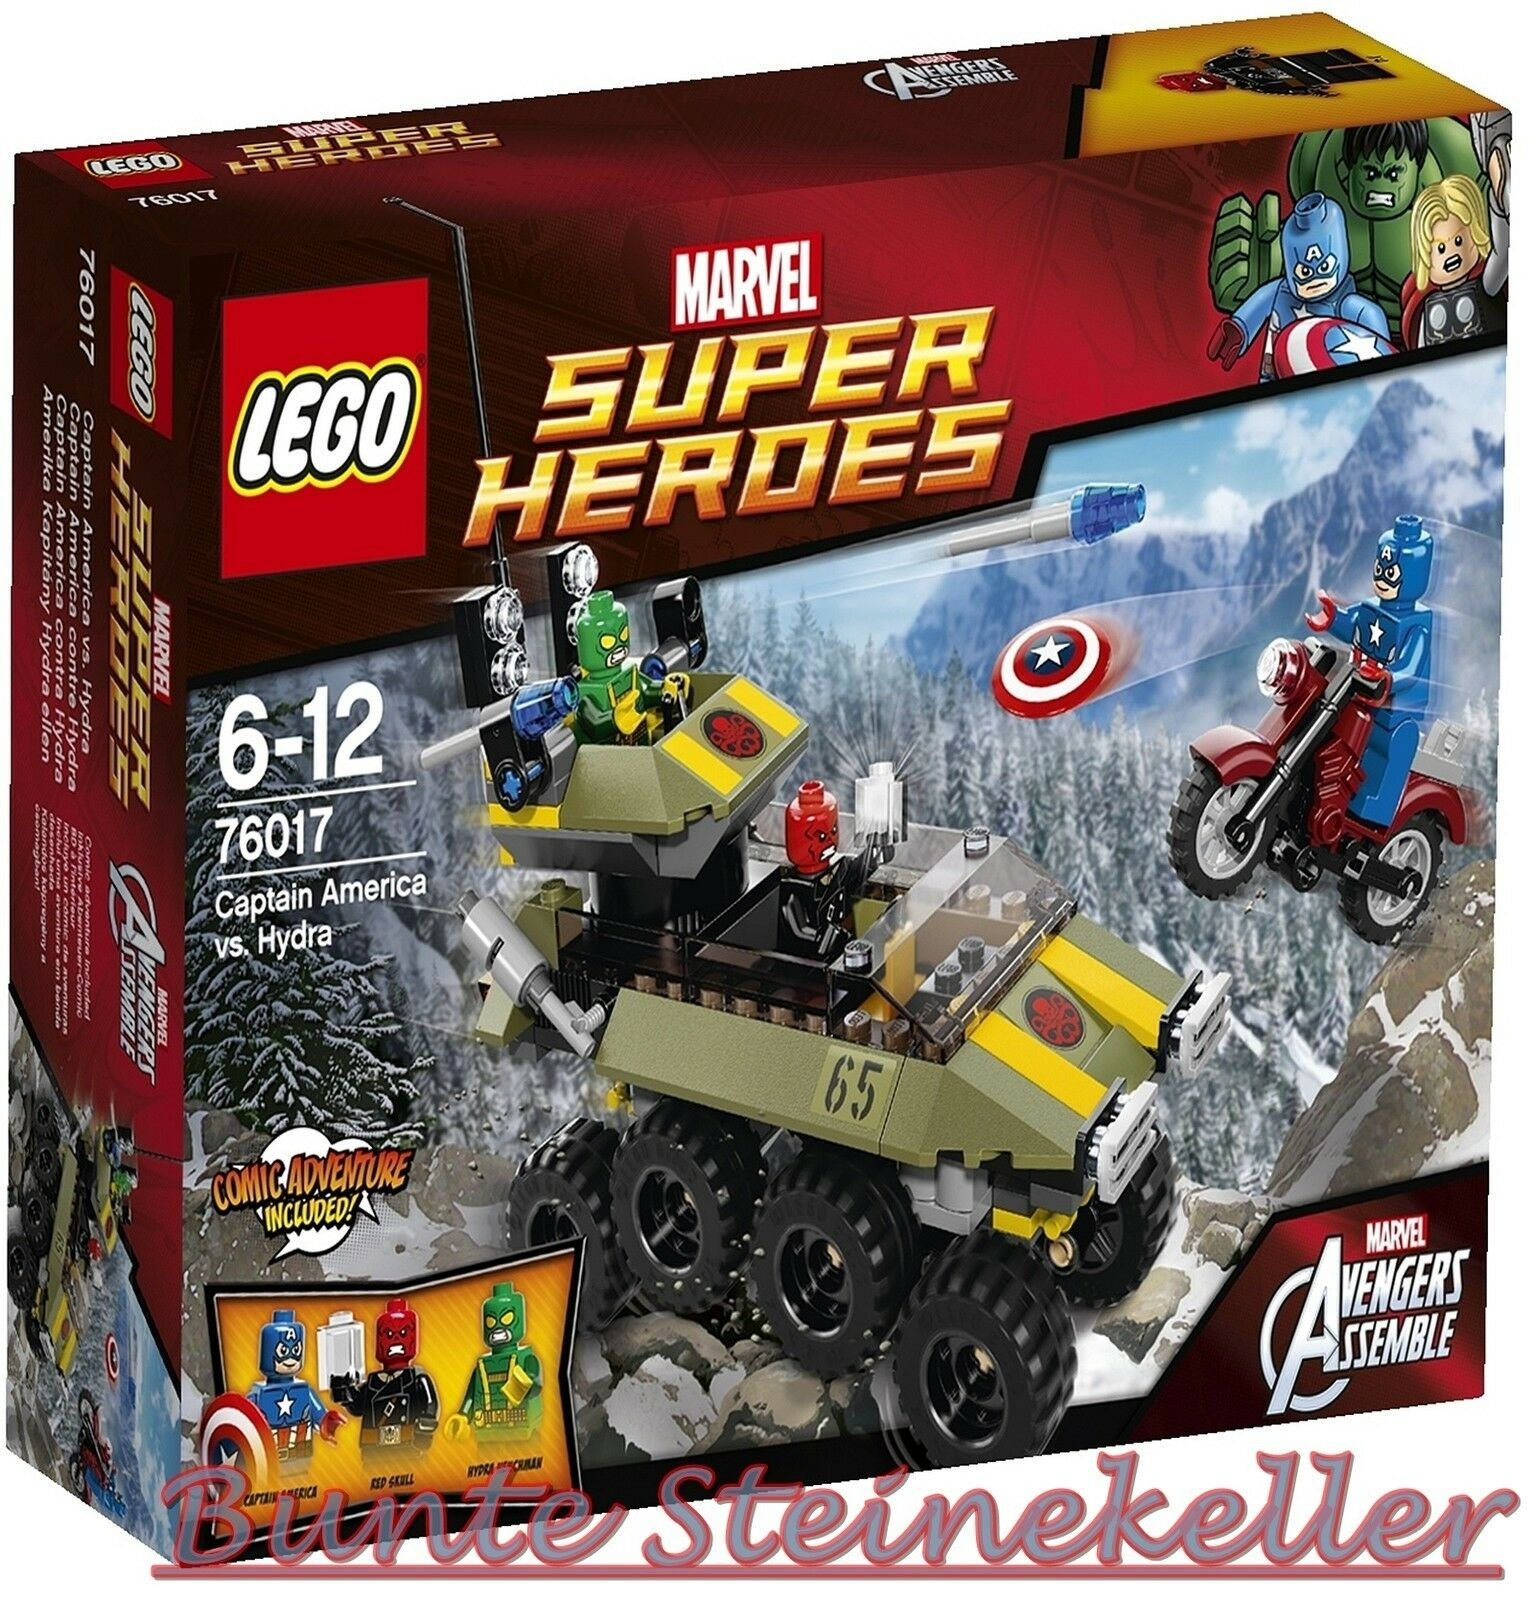 LEGO ® super heroes marvel  76017 Capitaine America vs. Hydra & 0. - expédition & nouveau